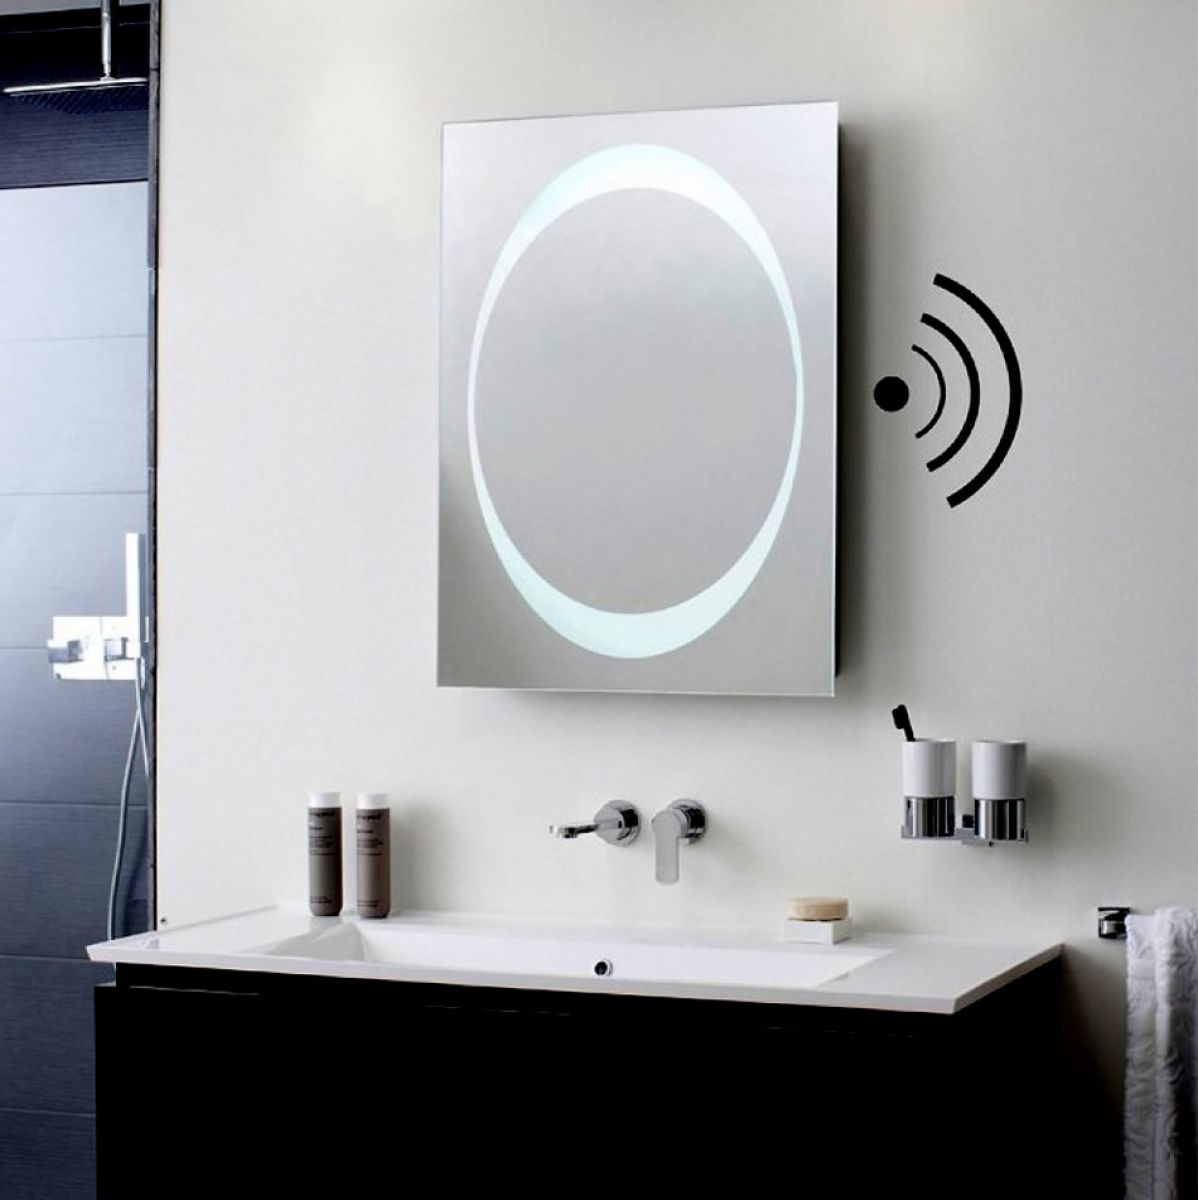 Bauhaus Revive 1 0 Led Mirror With Bluetooth Speakers Uk